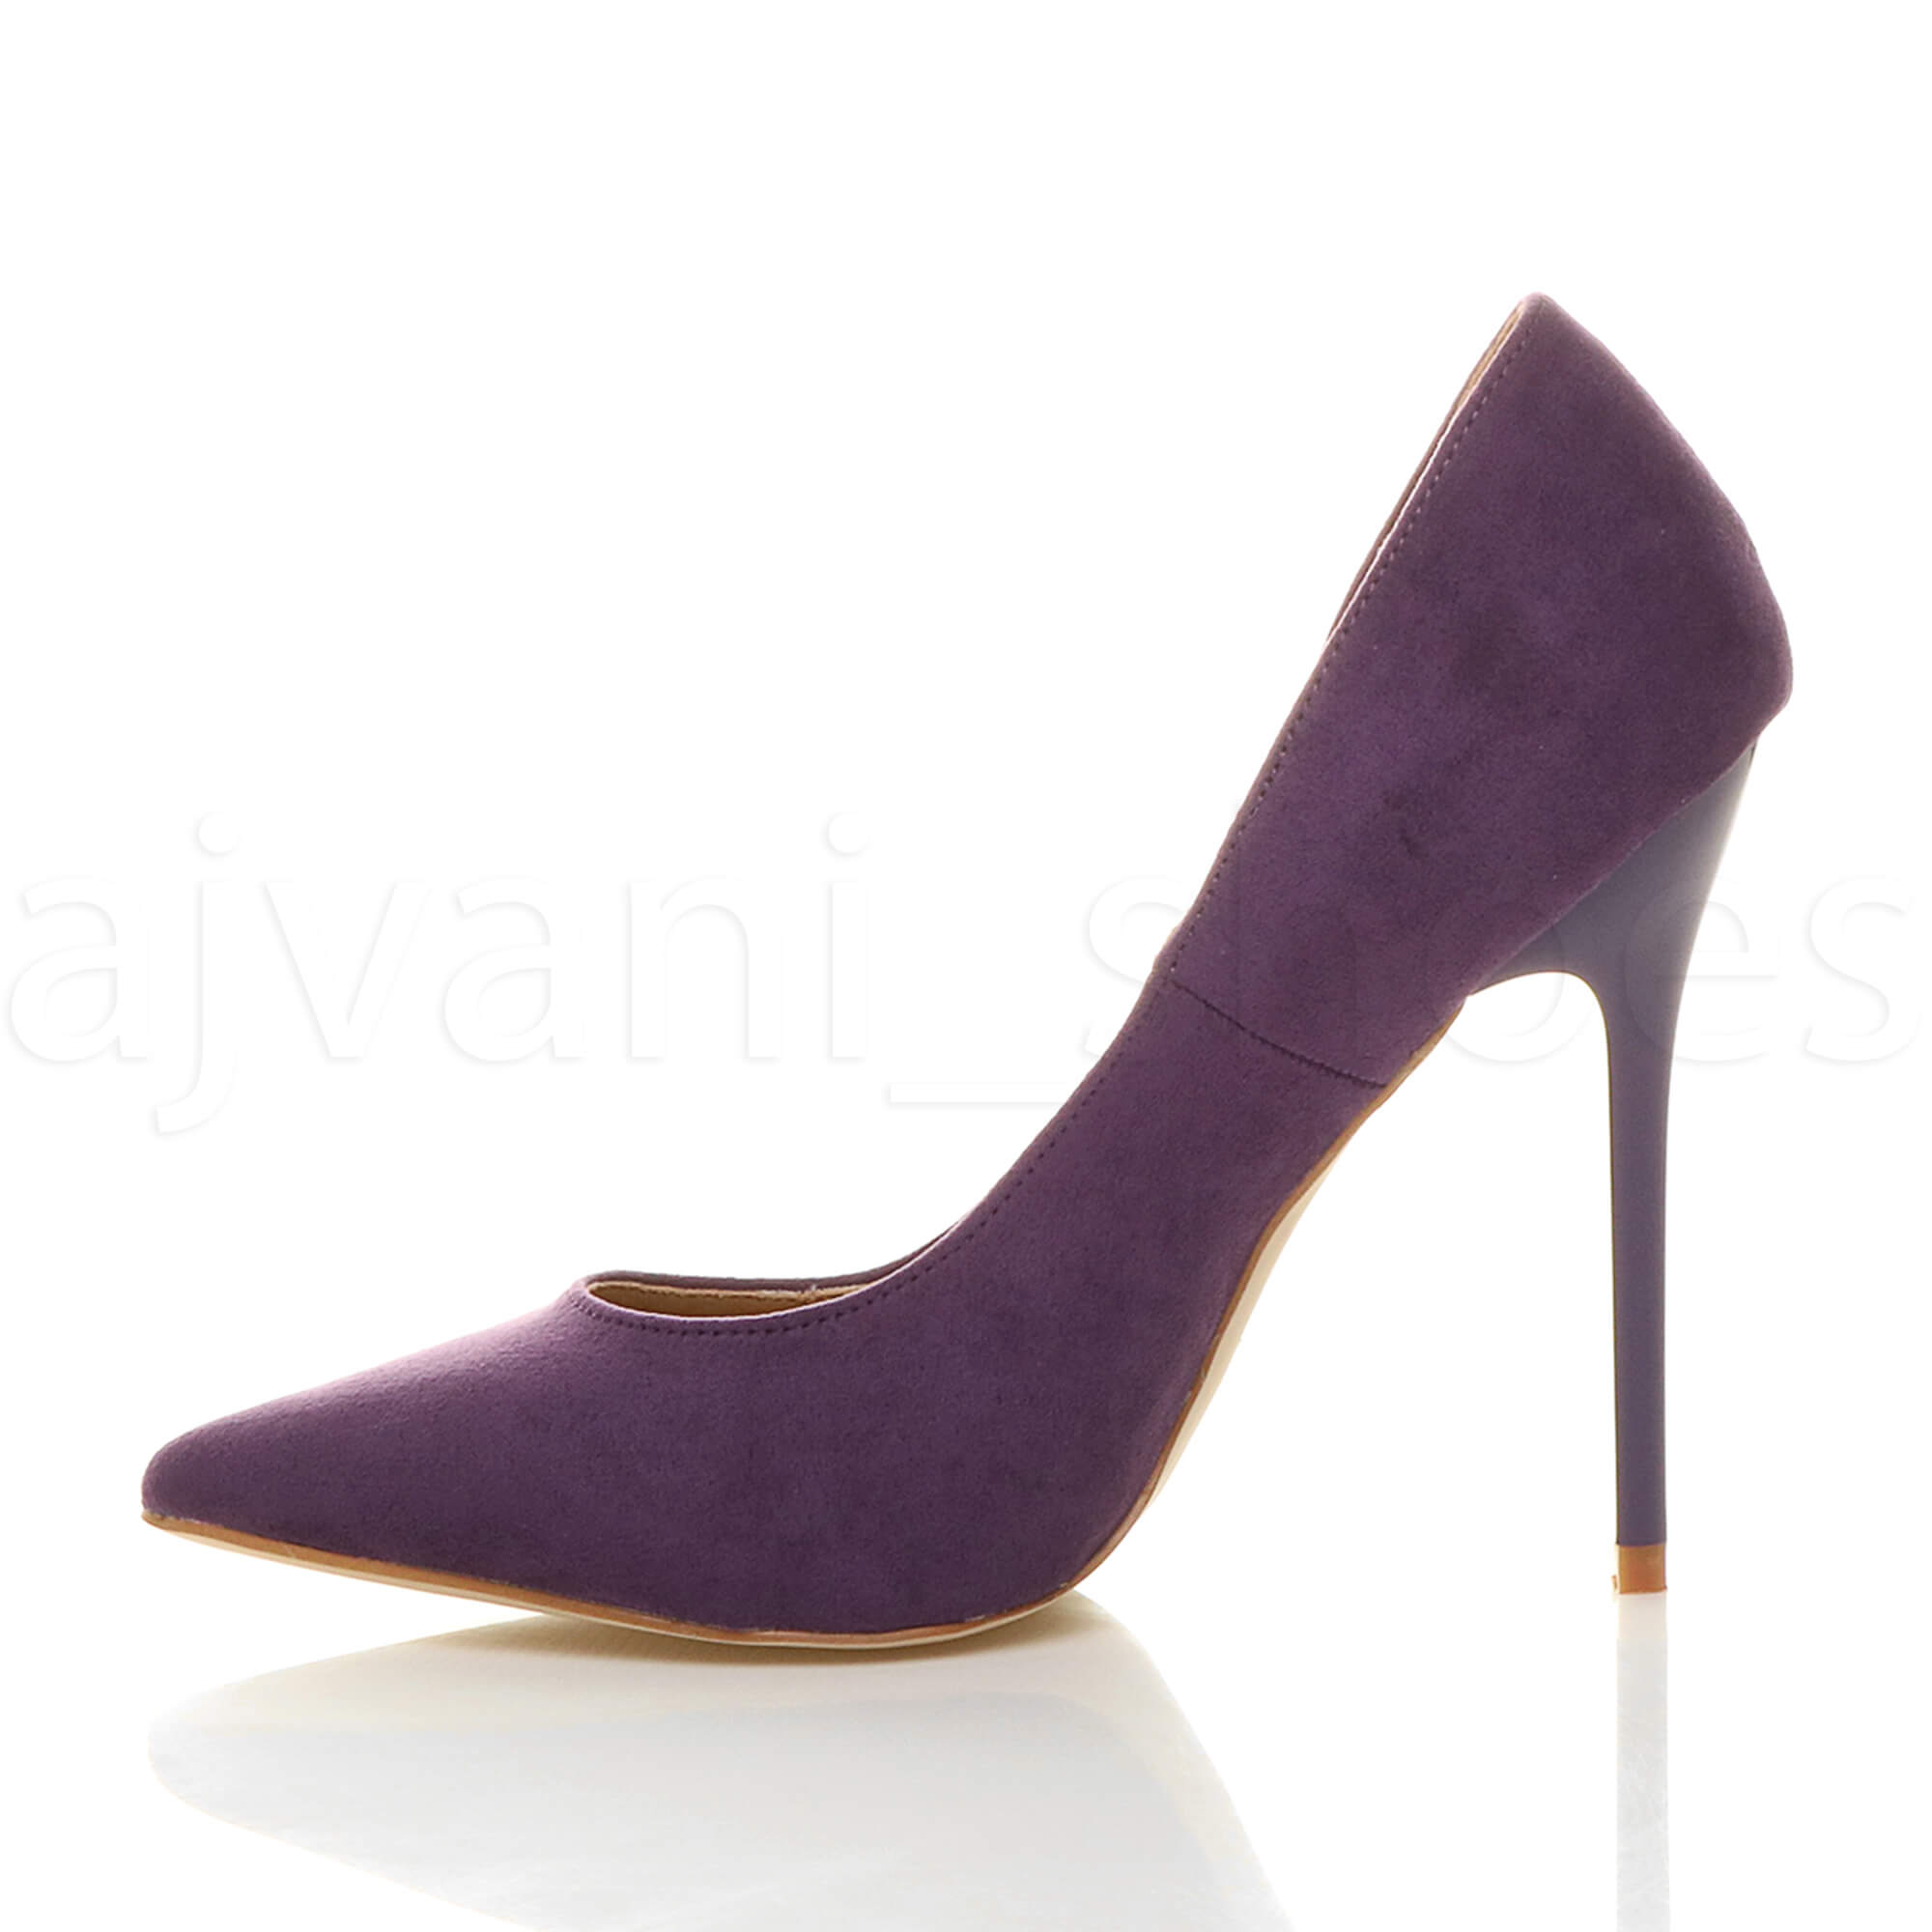 WOMENS-LADIES-HIGH-HEEL-POINTED-CONTRAST-COURT-SMART-PARTY-WORK-SHOES-PUMPS-SIZE thumbnail 170